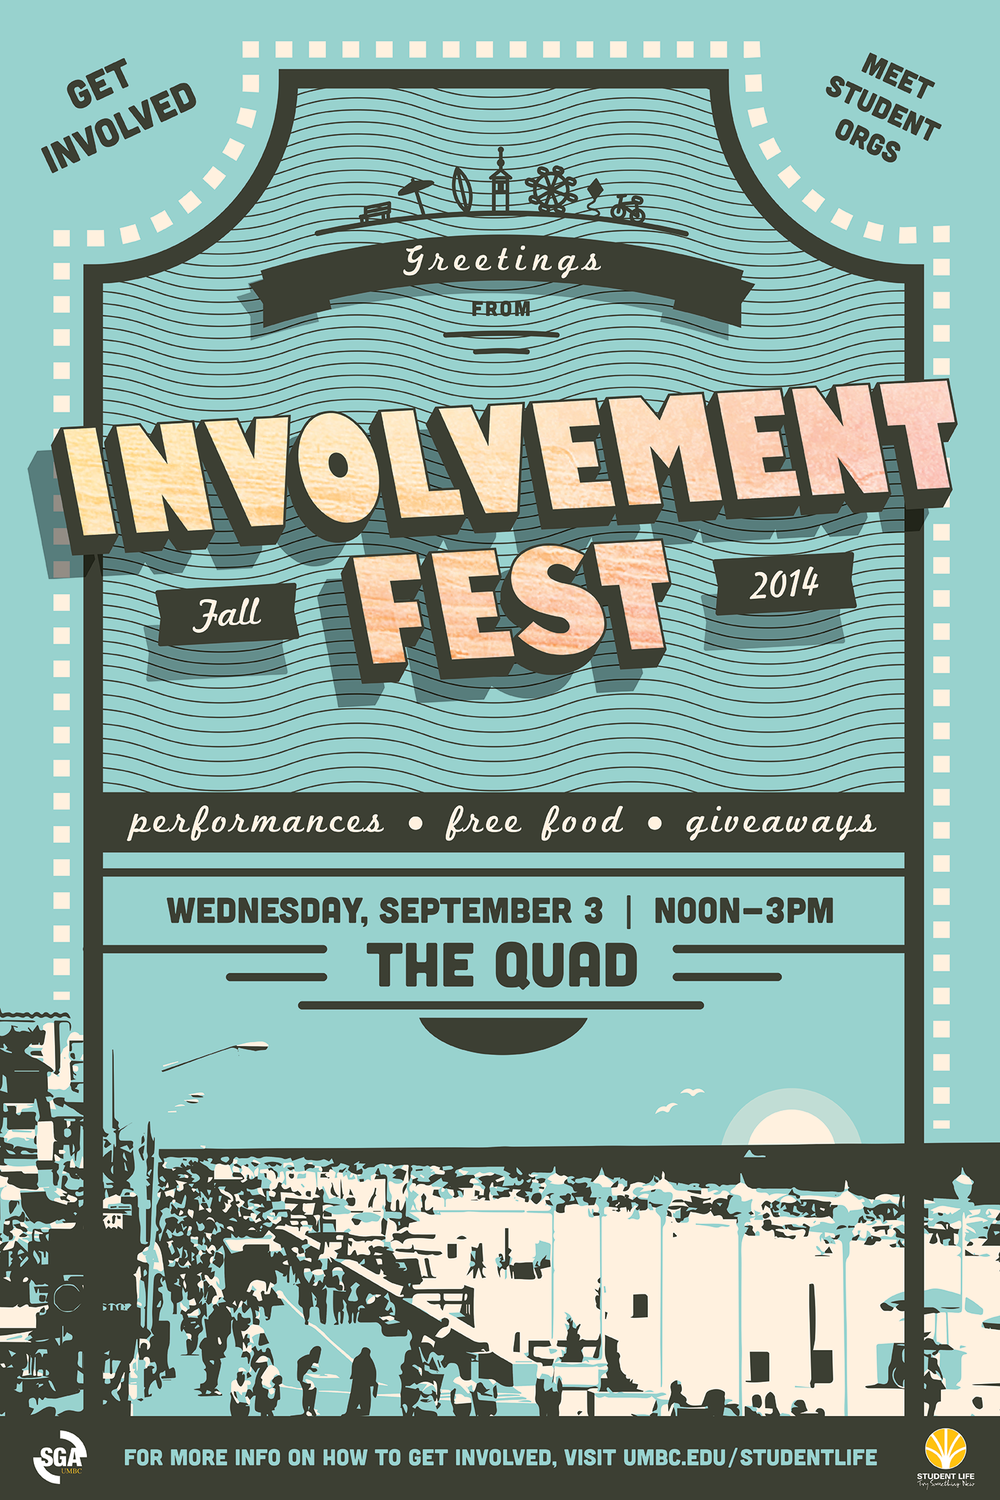 involvementfest_indoor_r1.png